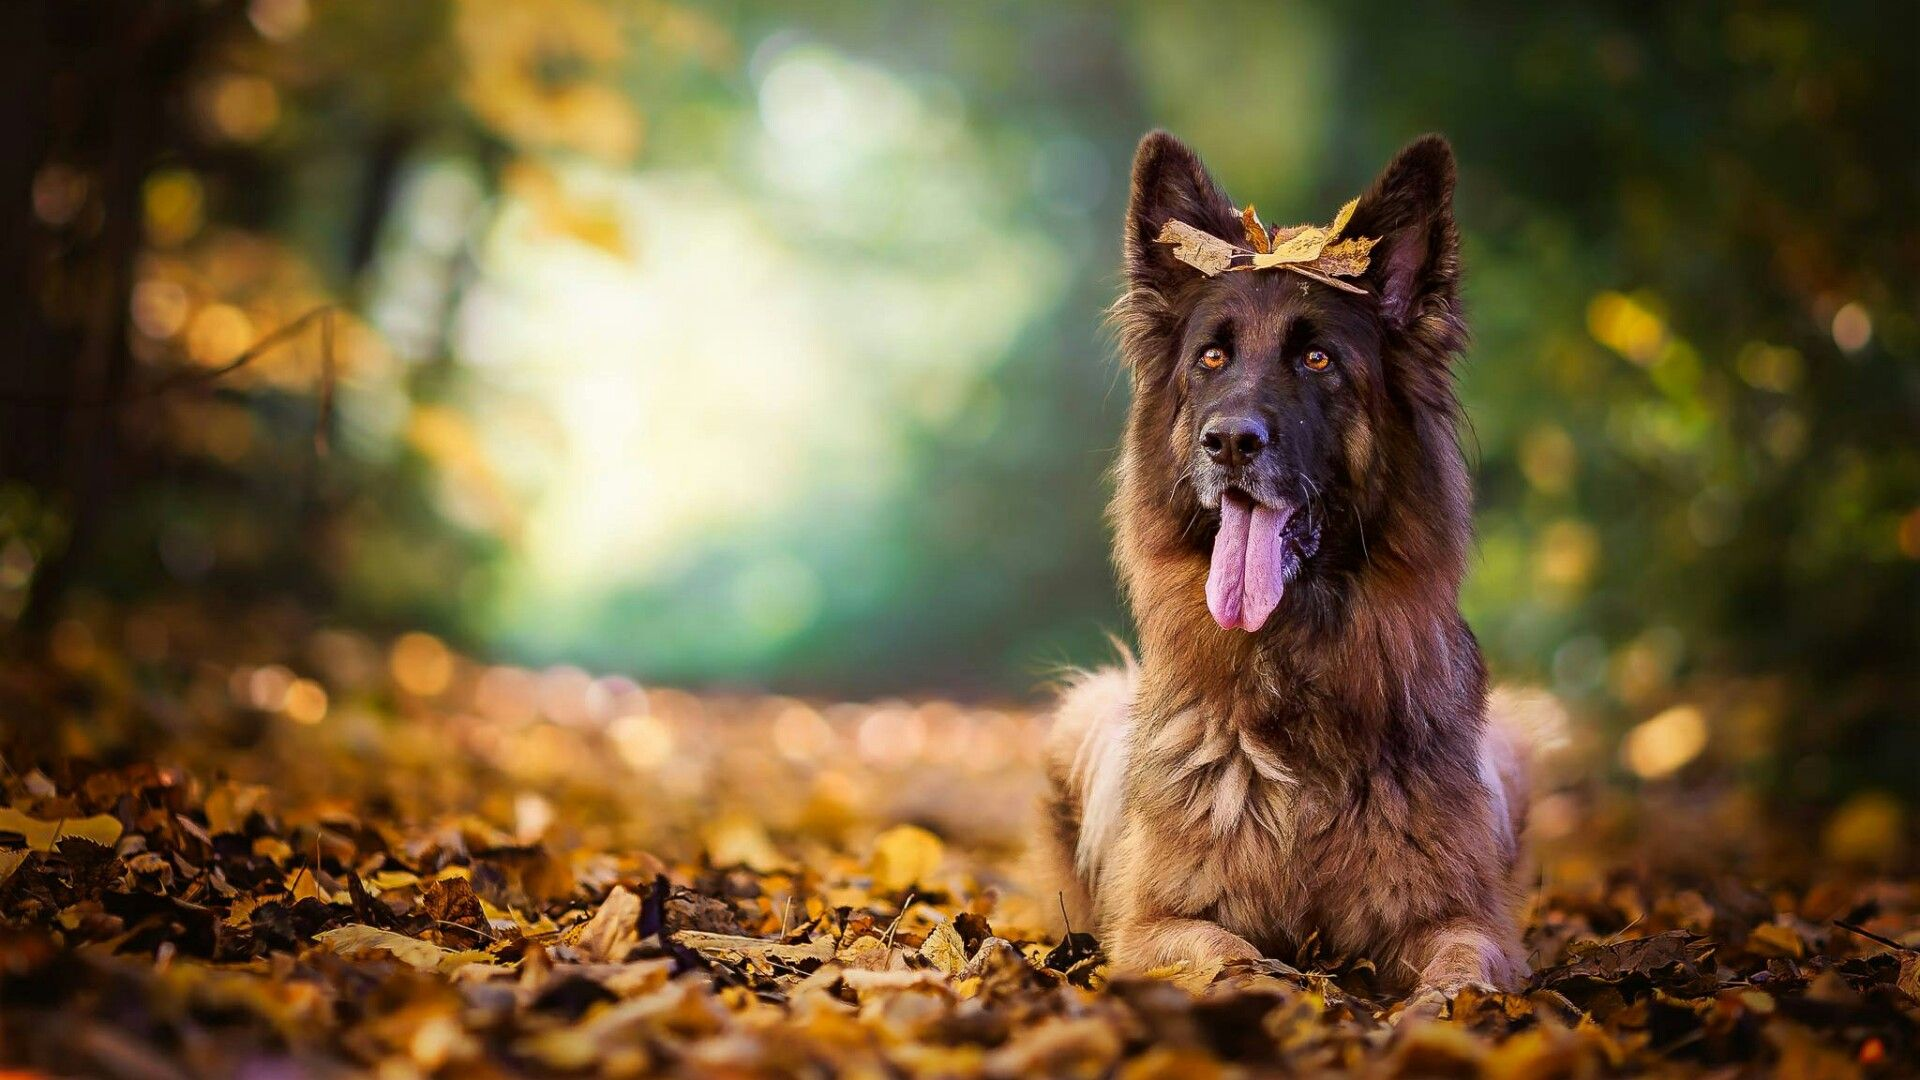 Cute Puppies Wallpapers With Quotes German Shepherd Dog Wallpapers Top Free German Shepherd